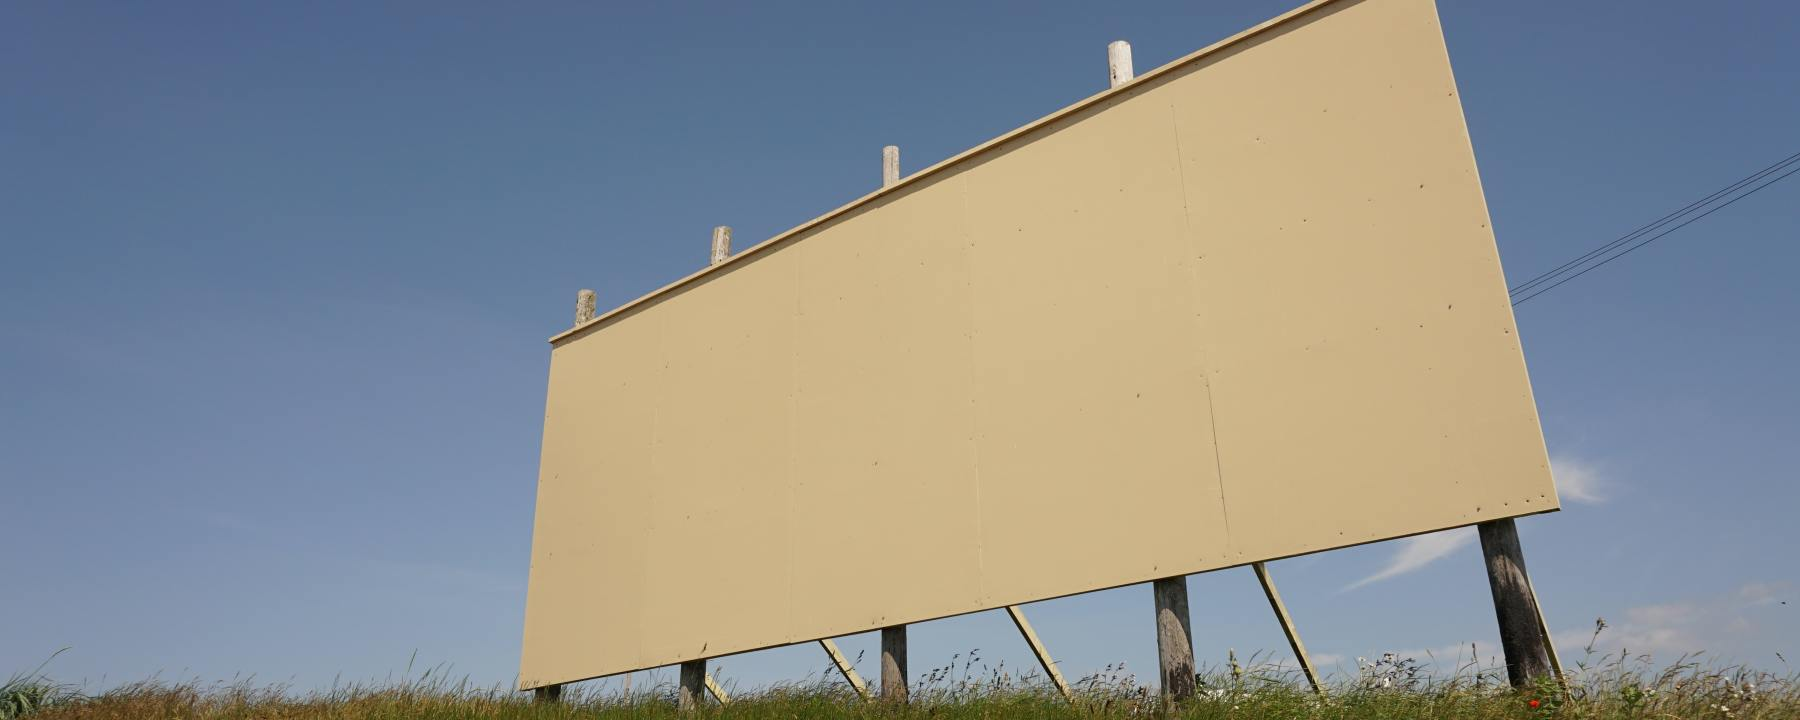 an empty billboard symbolizing a blank canvas or empty page